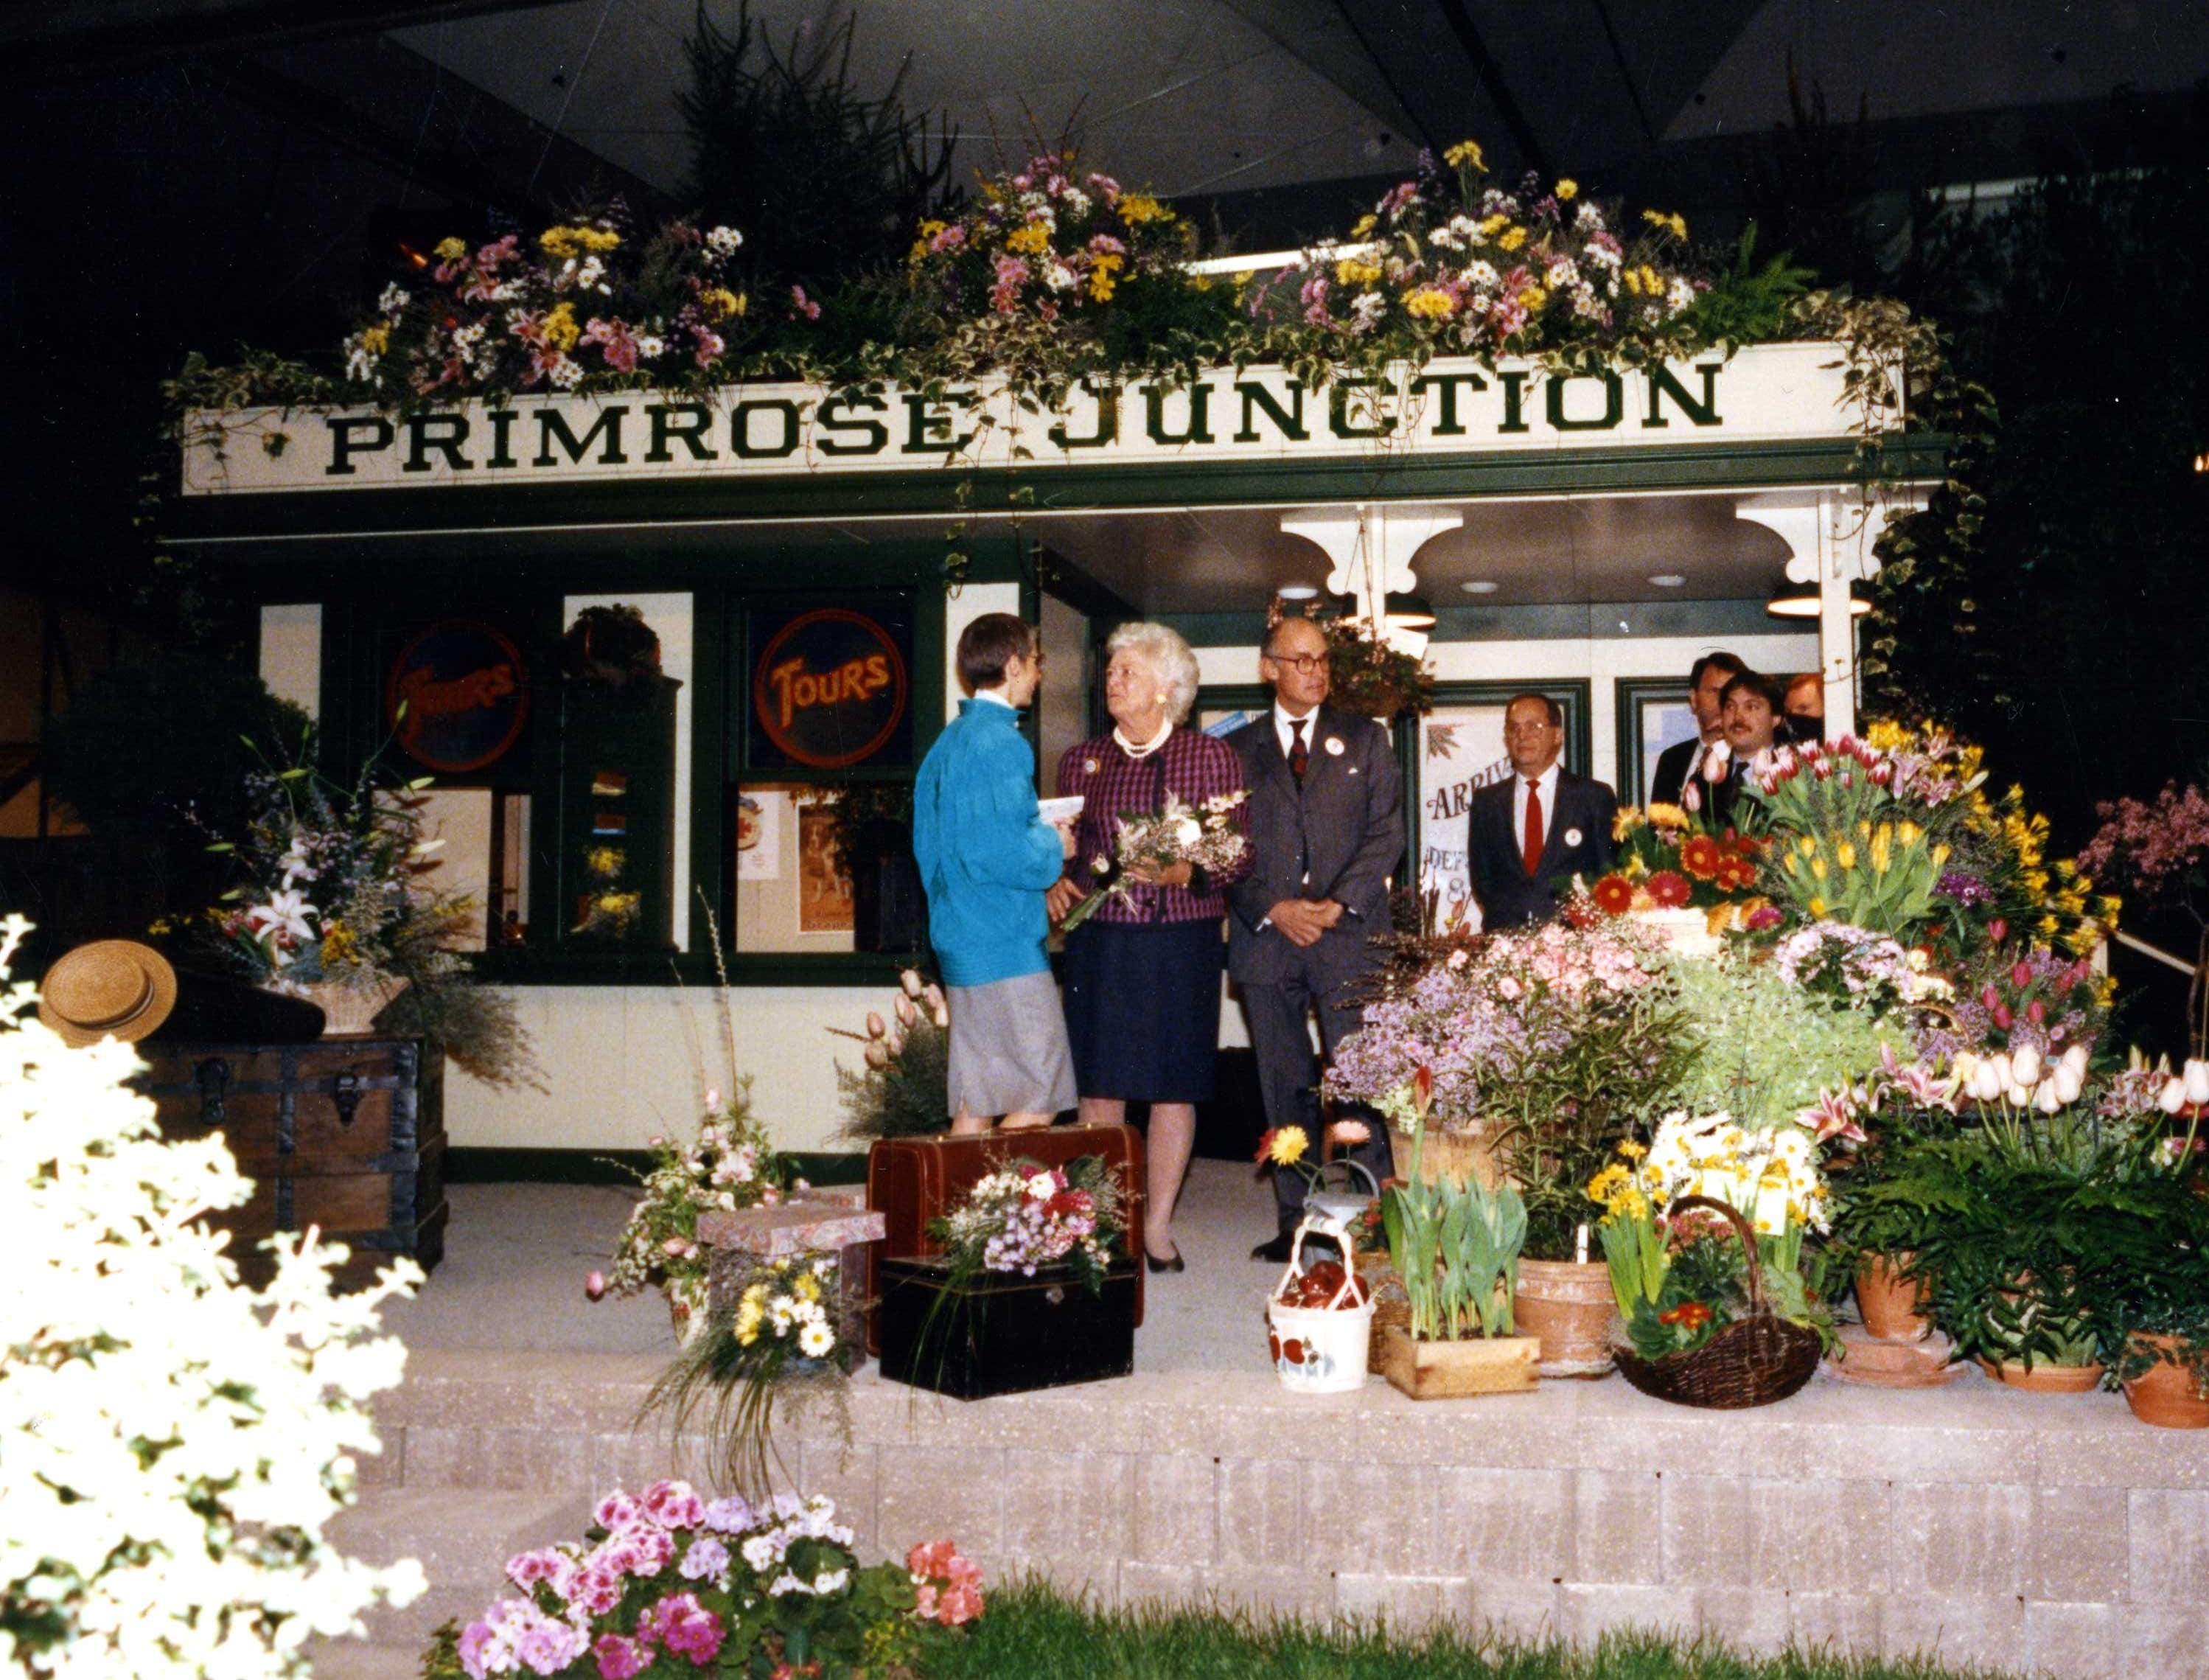 First Lady Barbara Bush at Primrose Junction exhibit at the Philadelphia Flower Show in 1992.